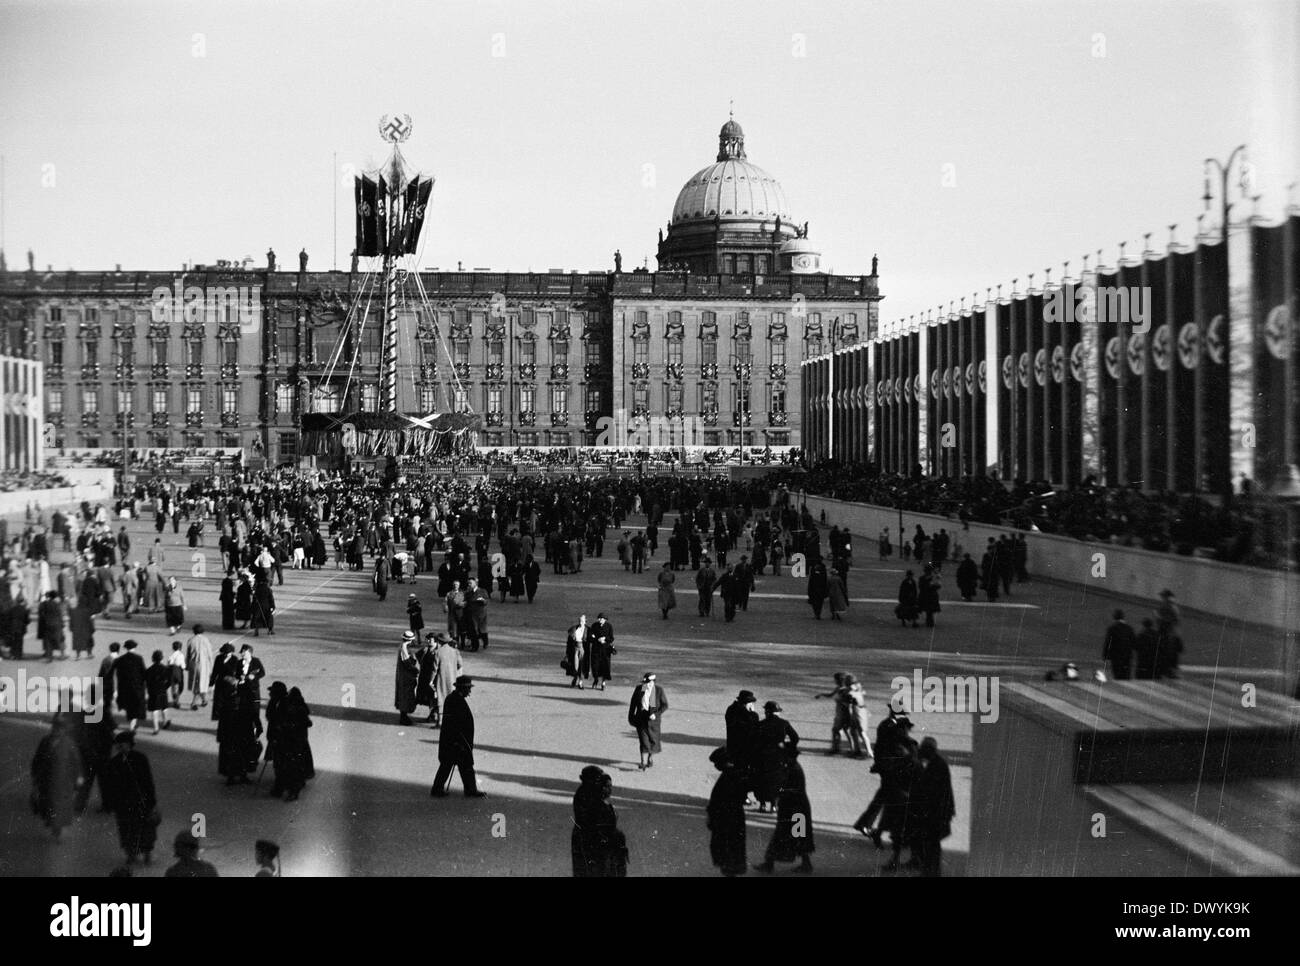 May Day (Maifeier) of the National Socialists, Berlin, Germany - Stock Image